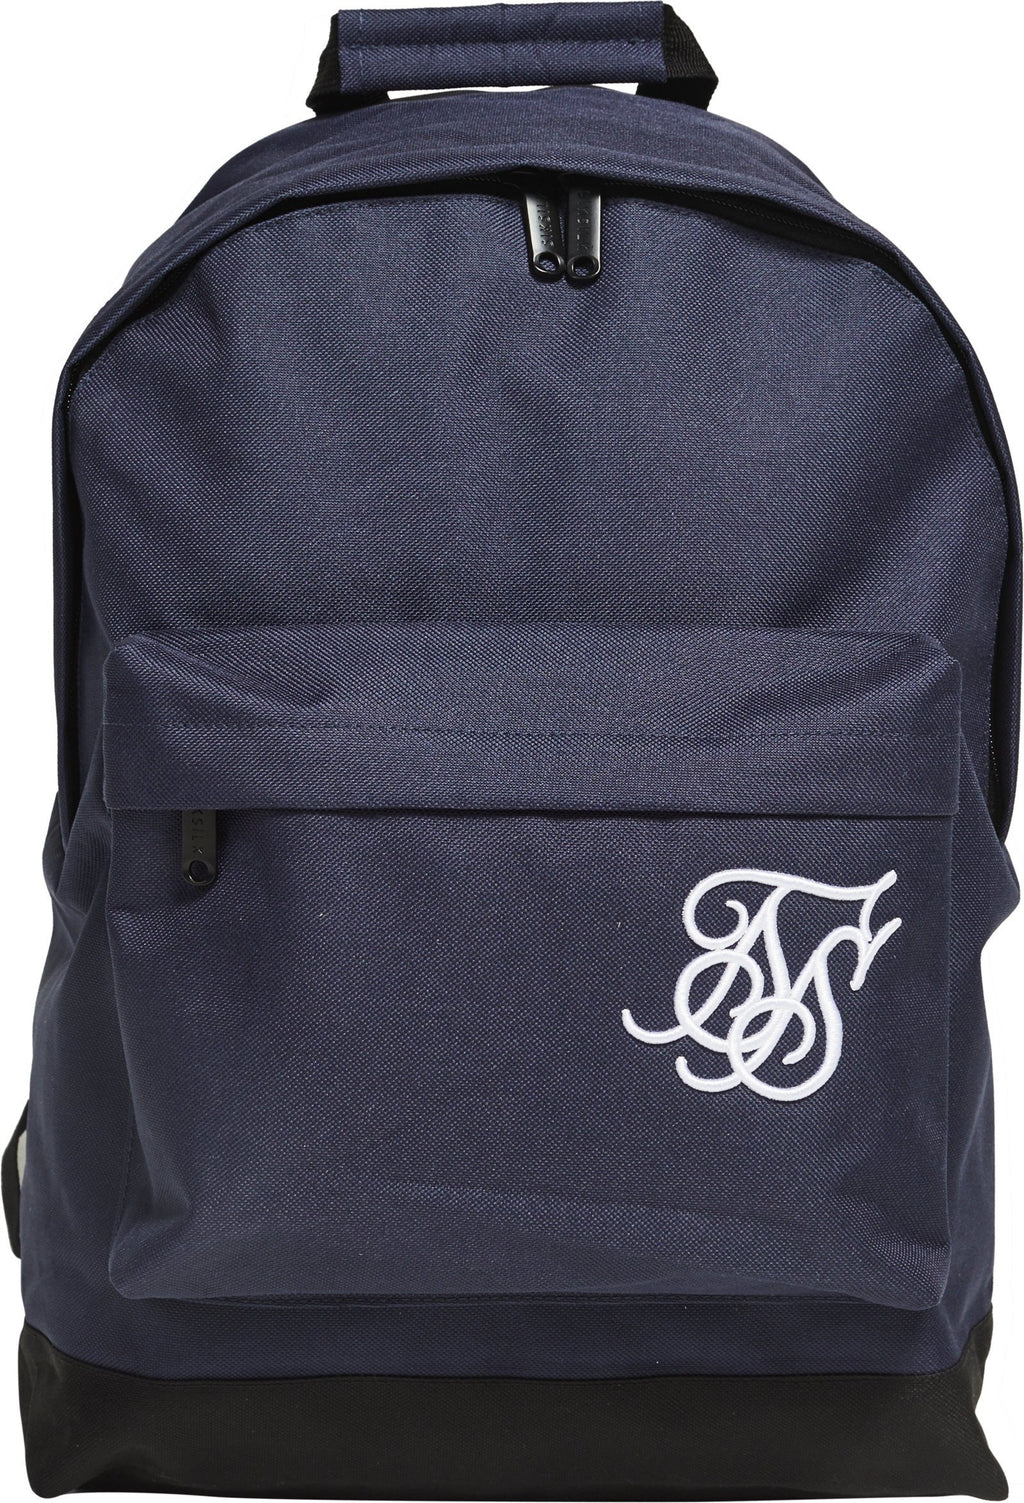 Sik Silk Pouch Backpack Bag Navy